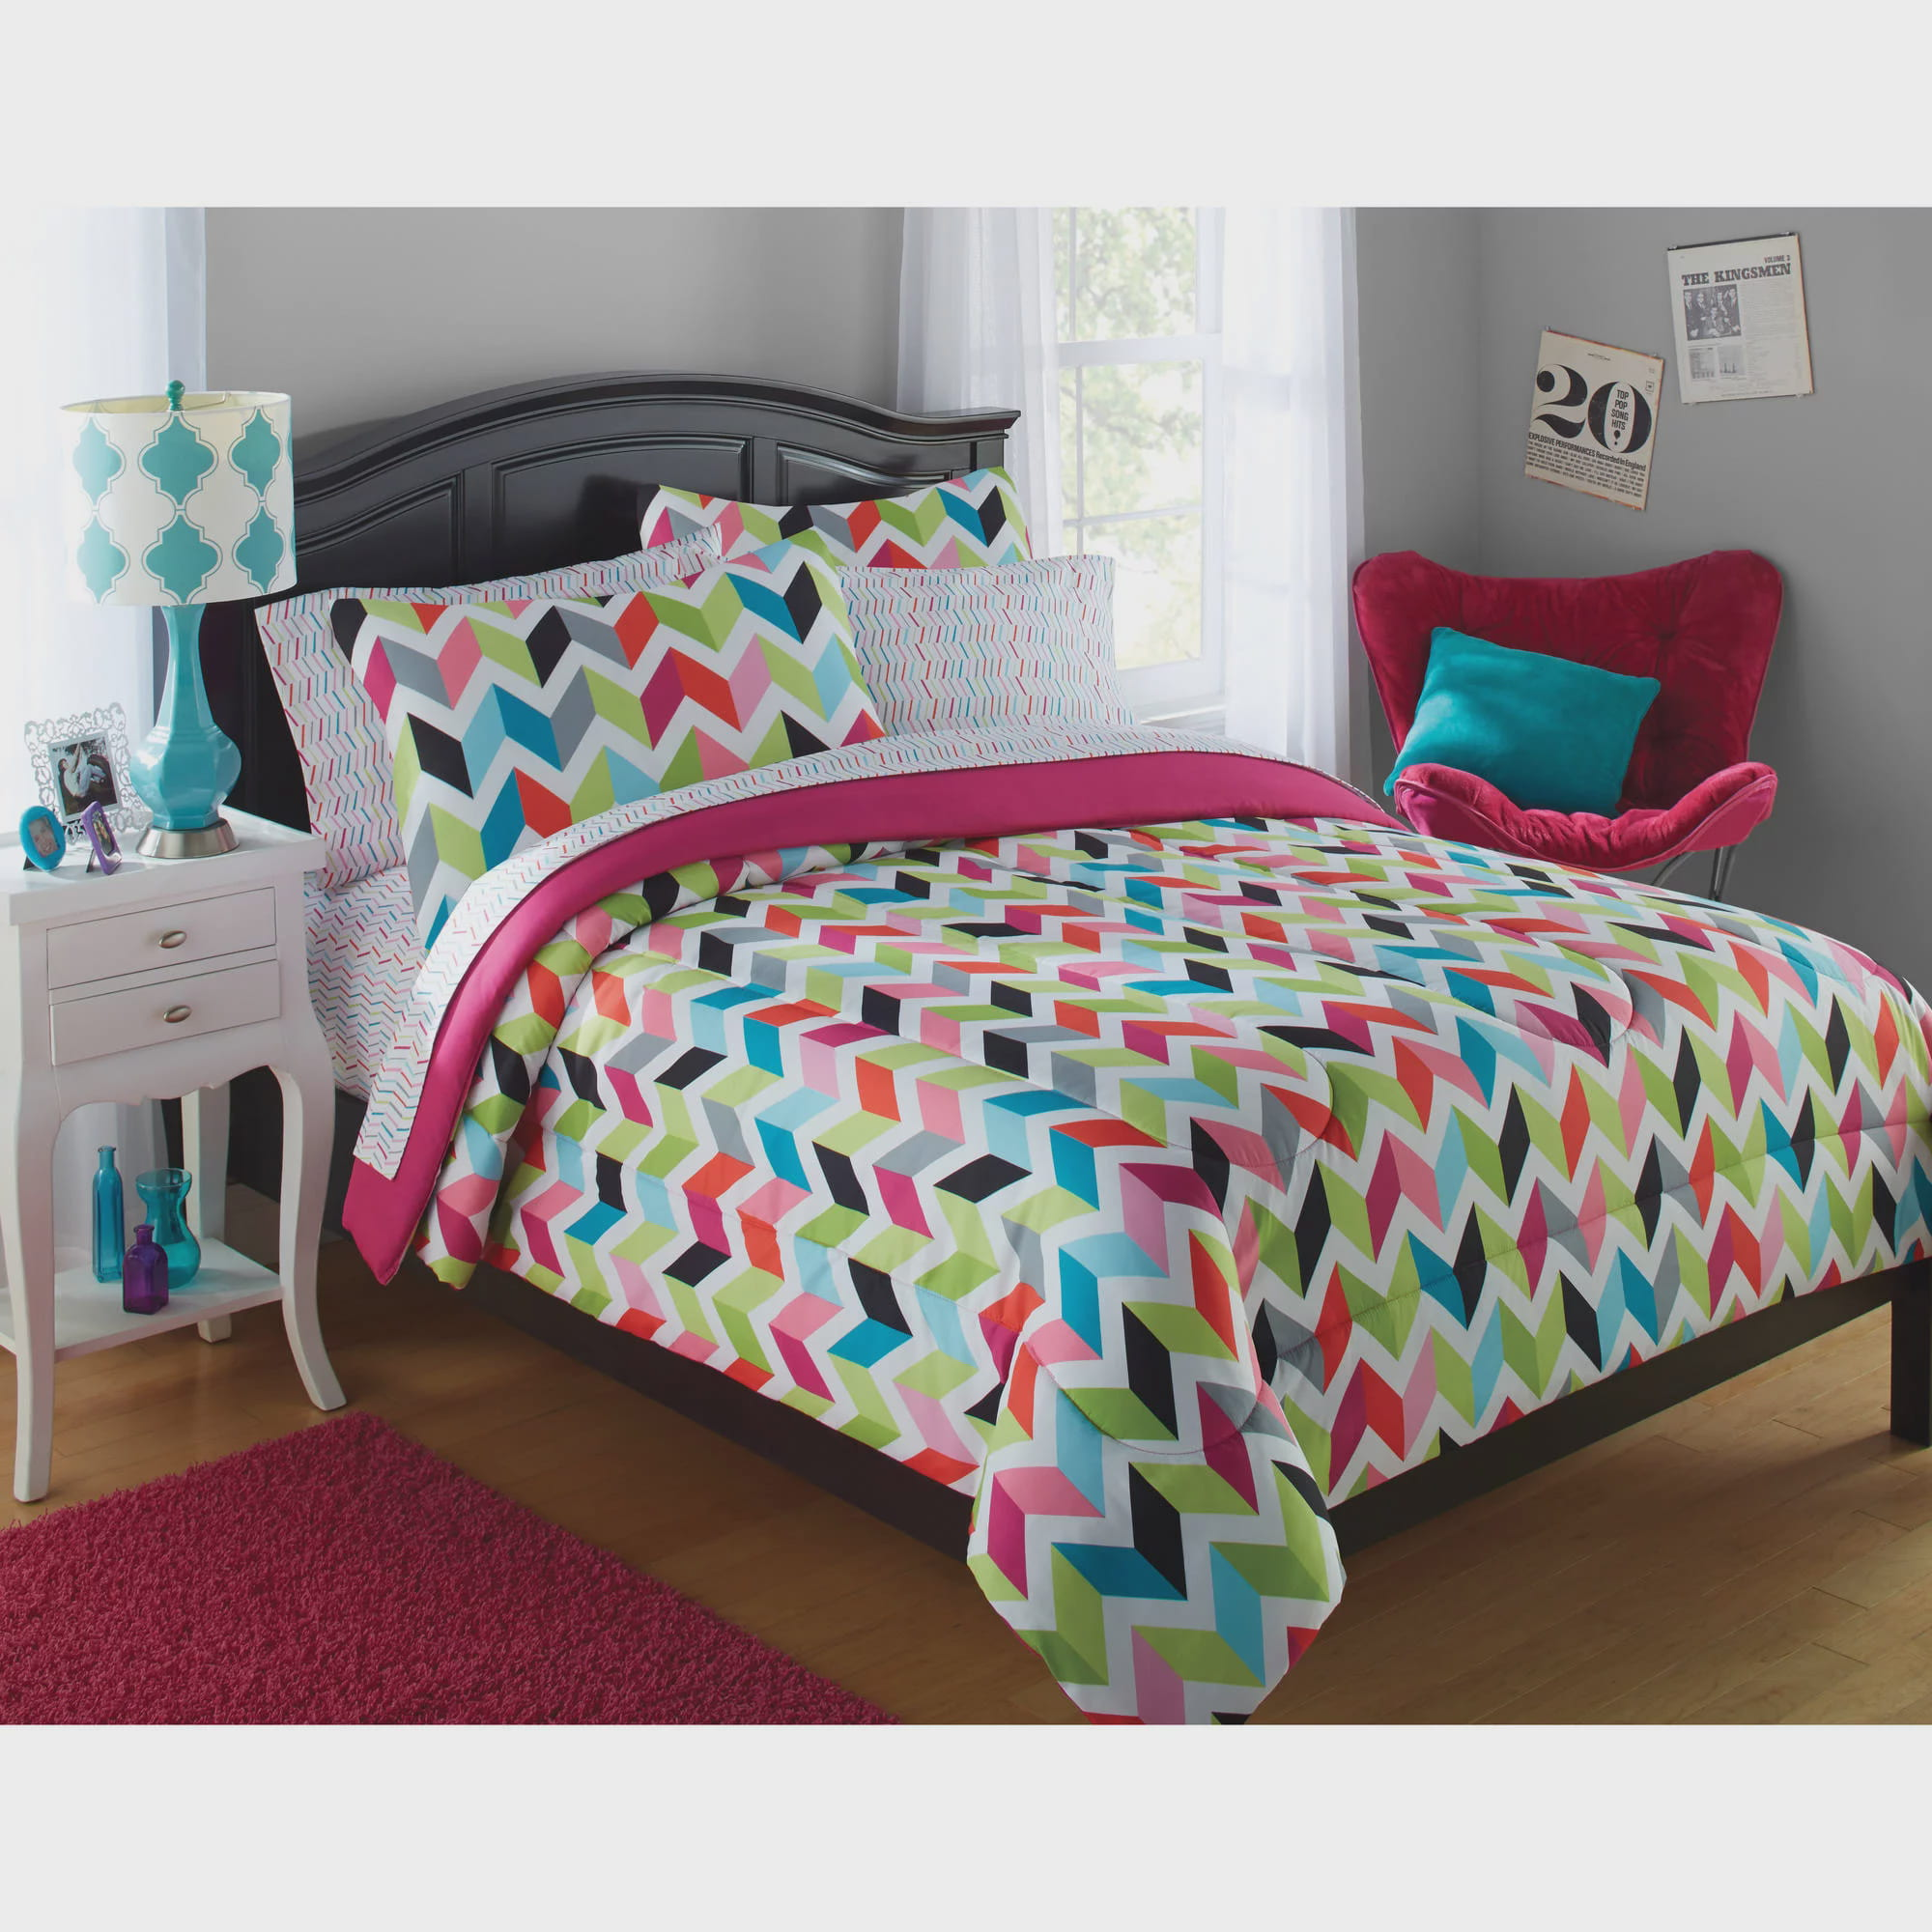 Your Zone Bright Chevron Bed in a Bag Bedding Set Walmartcom